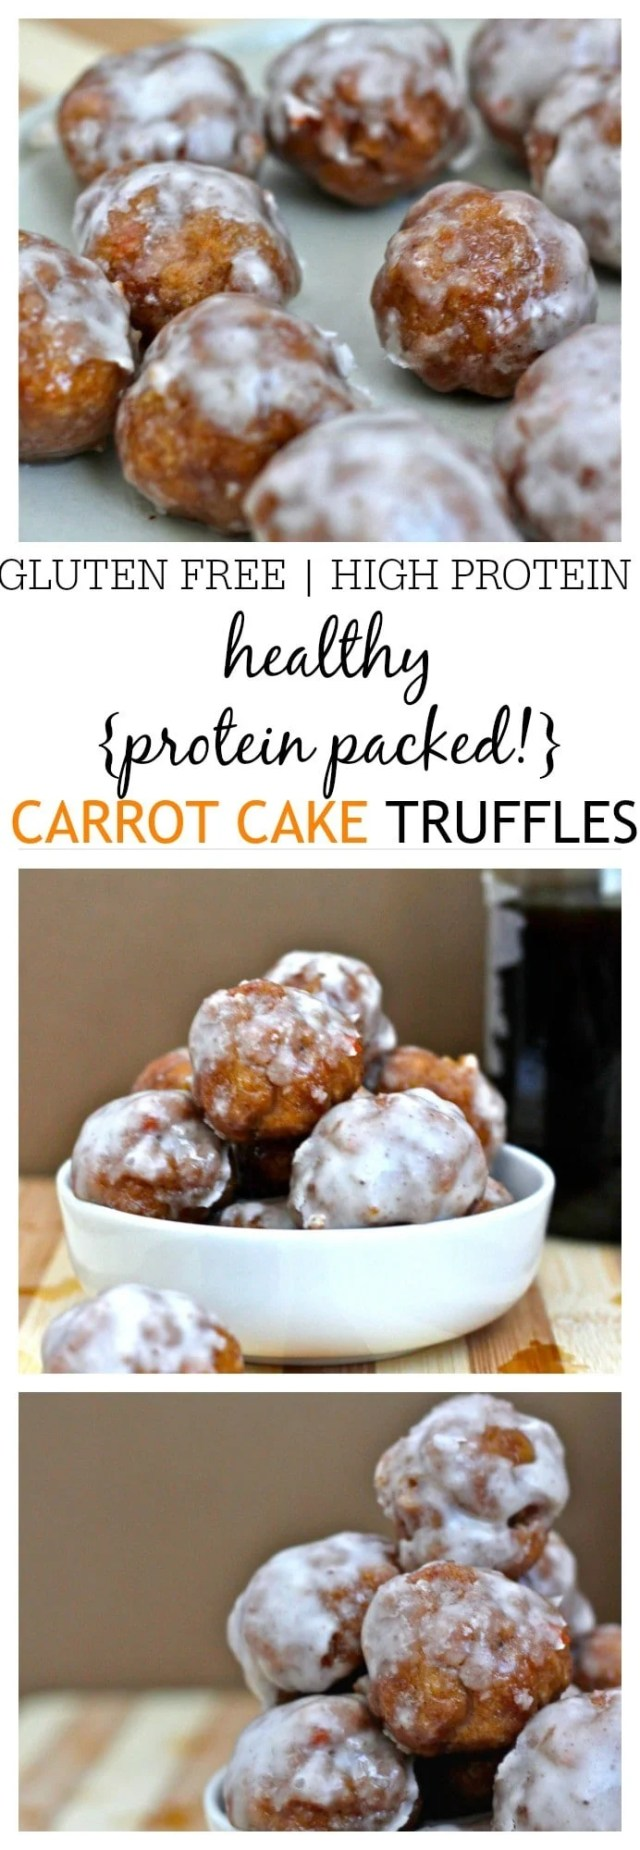 Healthy {Protein Packed} Carrot Cake Truffles- These healthy Carrot Cake Truffles are SO simple to whip up and you'd never tell they were nutritious! High in protein, very low in sugar and naturally gluten free, these are the perfect snack or pre/post workout treat! @thebigmansworld - thebigmansworld.com